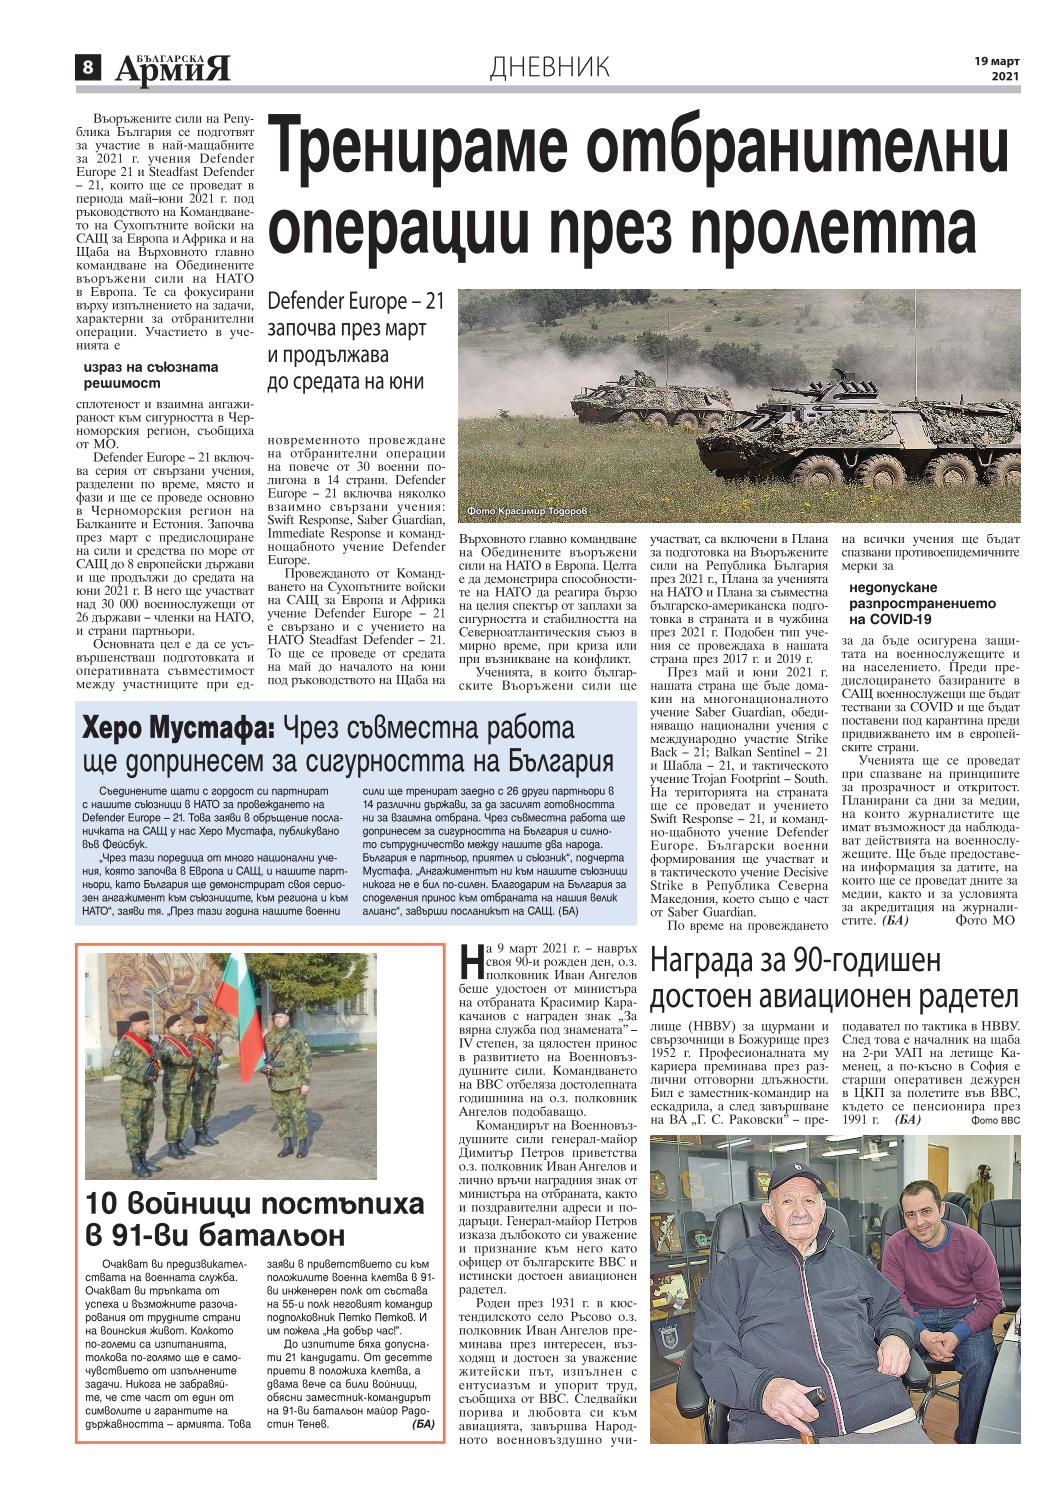 https://armymedia.bg/wp-content/uploads/2021/04/08.page1_-152.jpg